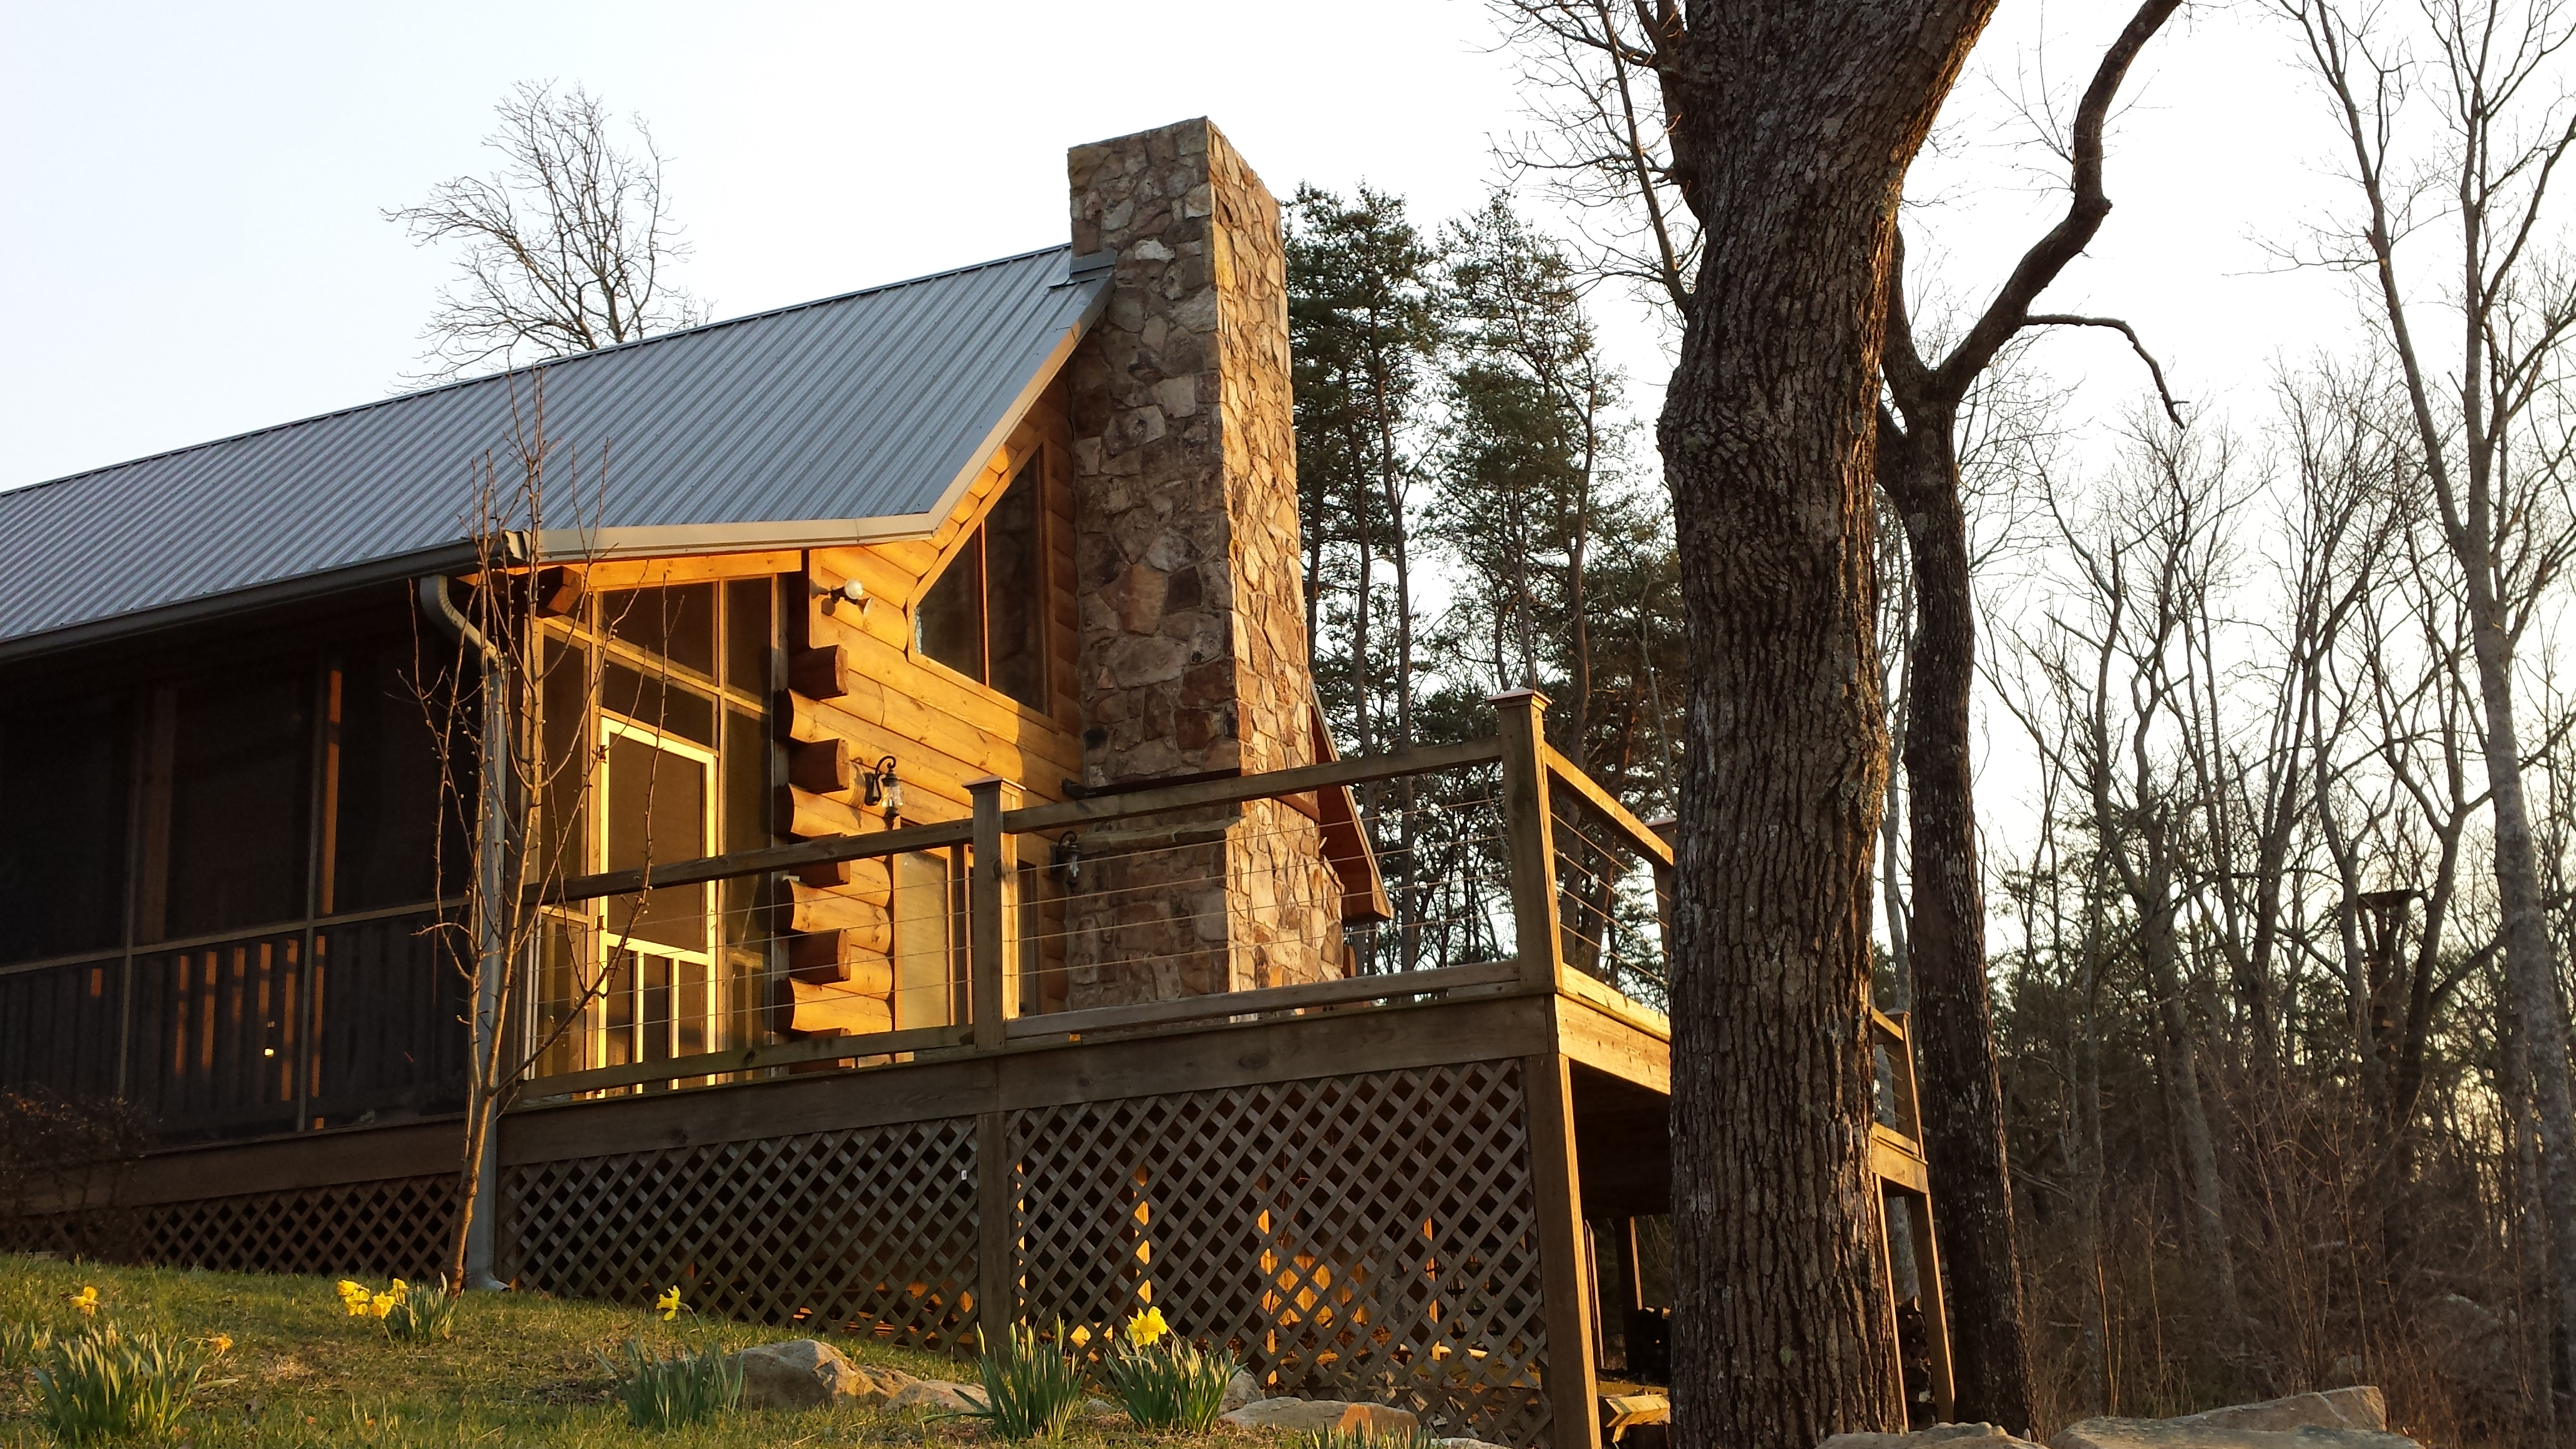 cabin pet in pigeon chattanooga rent forge rentals friendly gatlinburg great cabins mountains smoky tennessee for